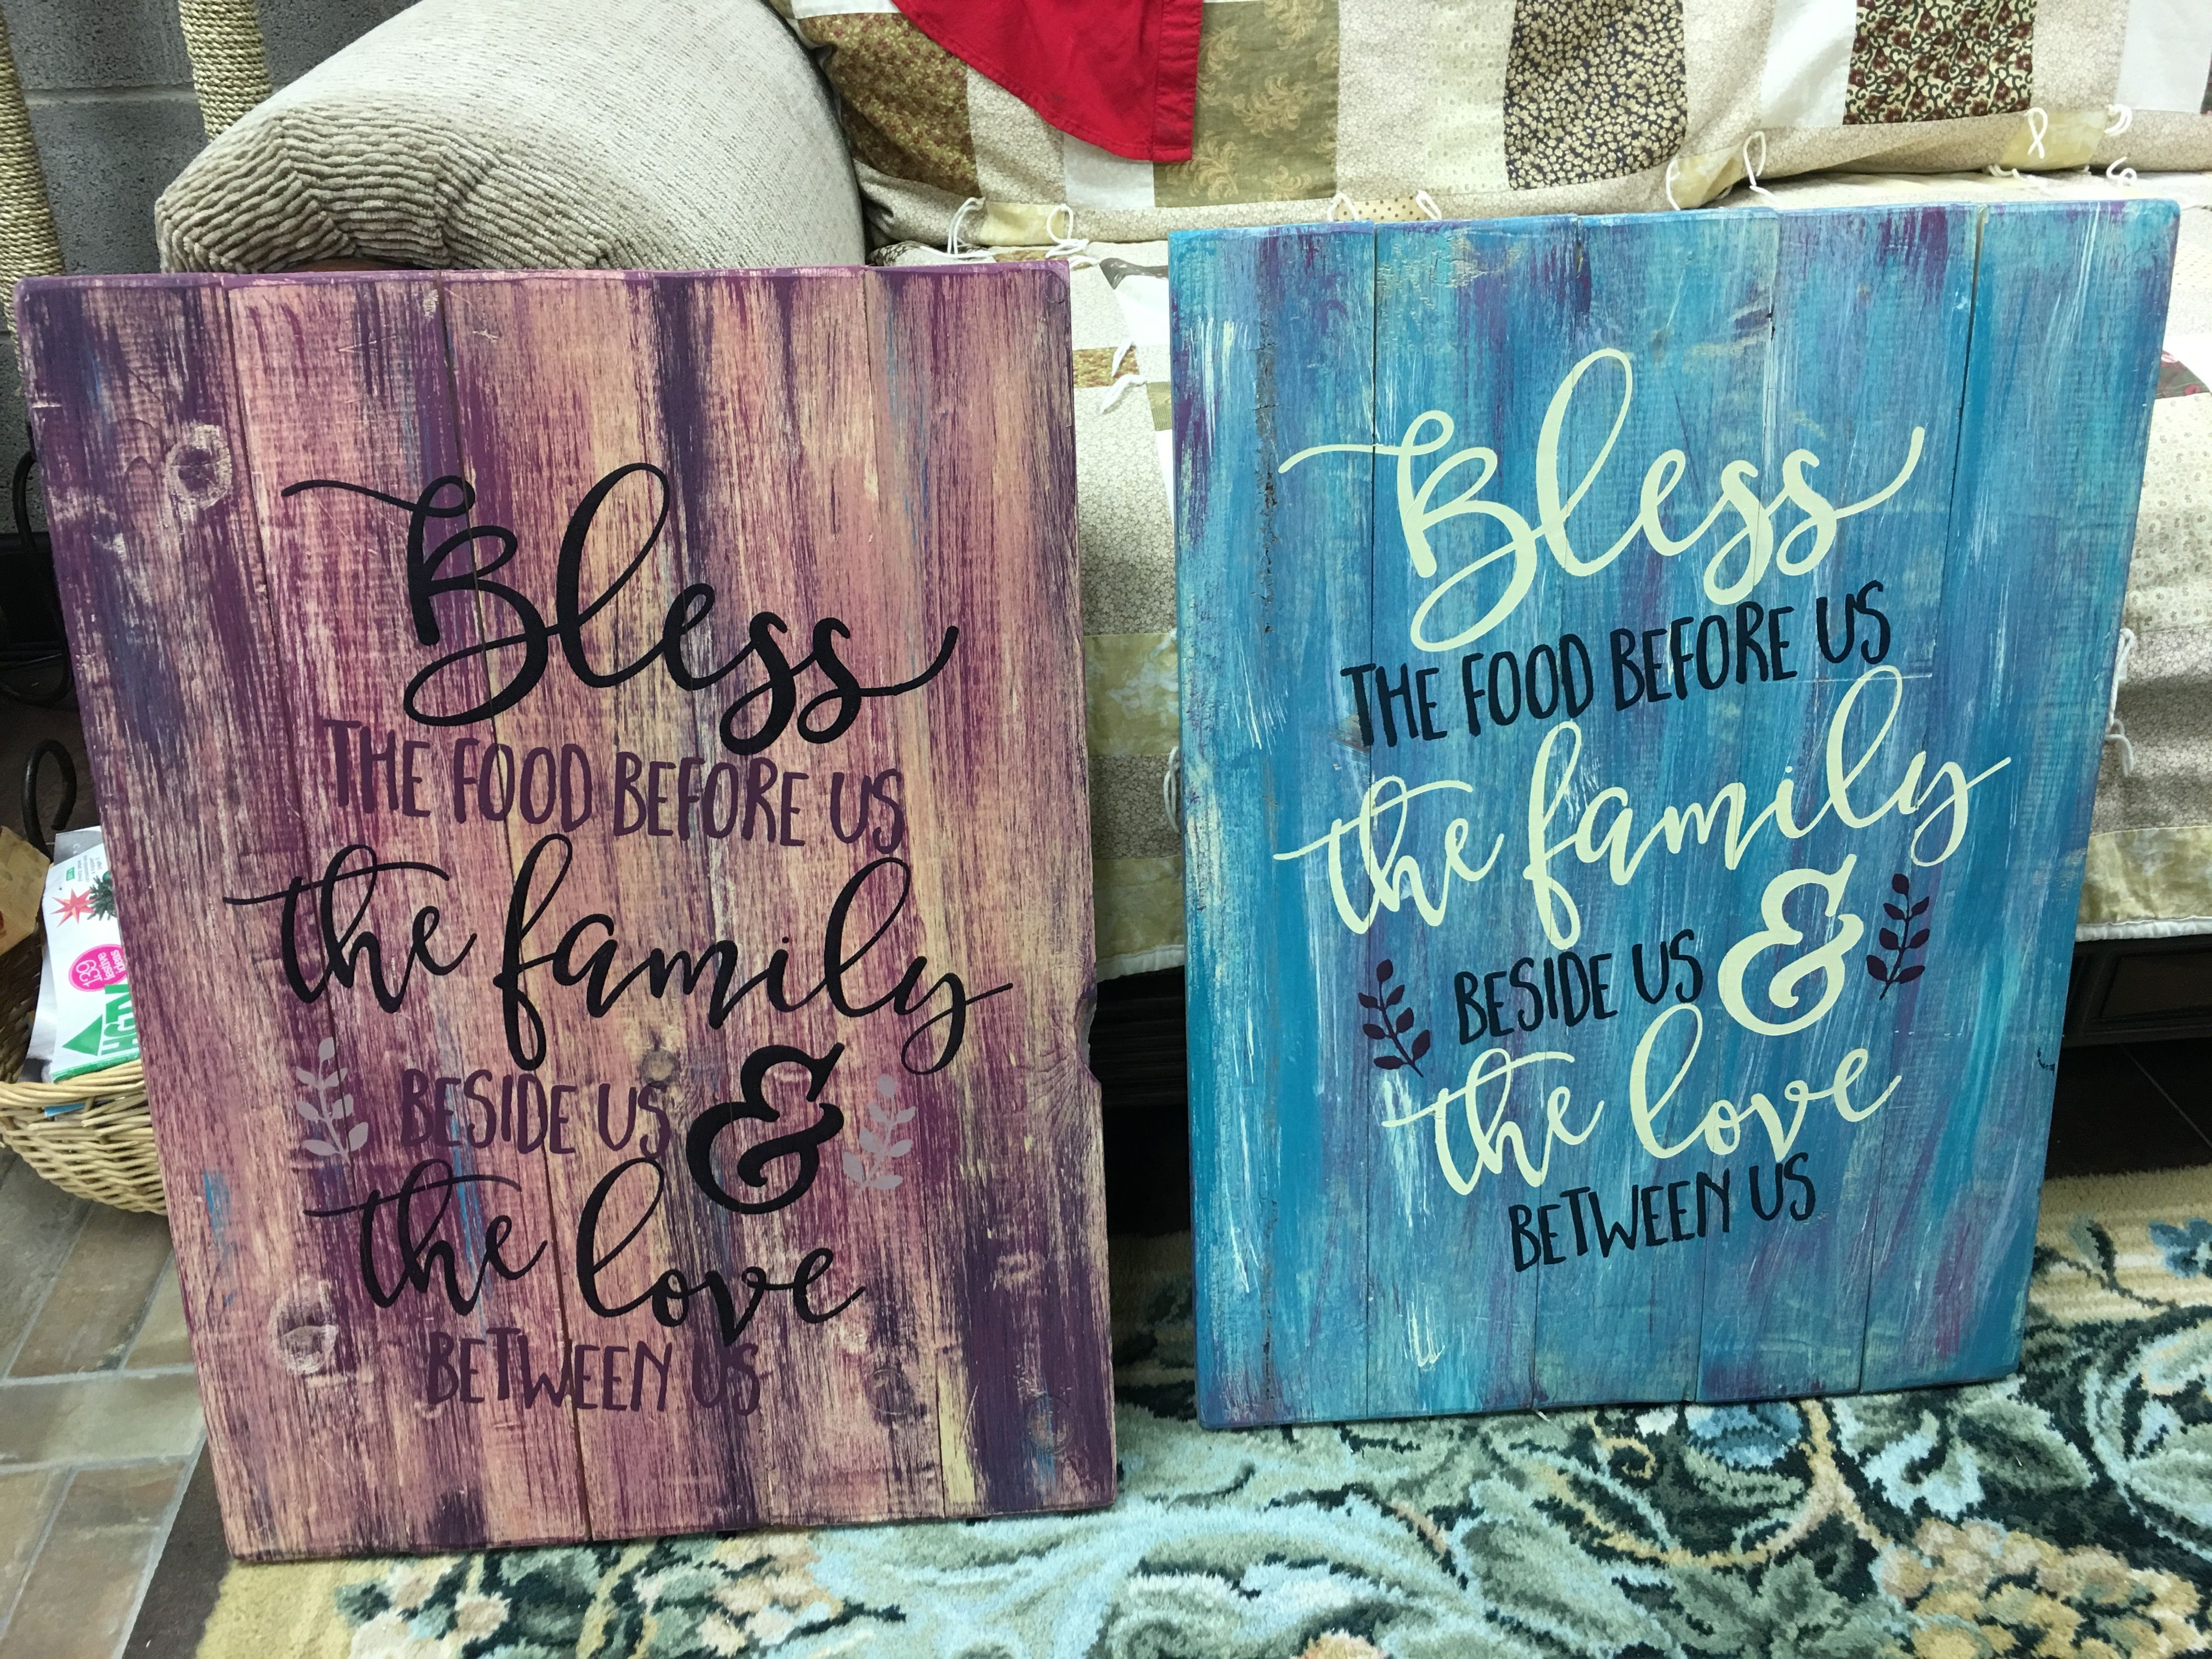 Bless Board Art Pallet Painting Ideas Love Quotes Family